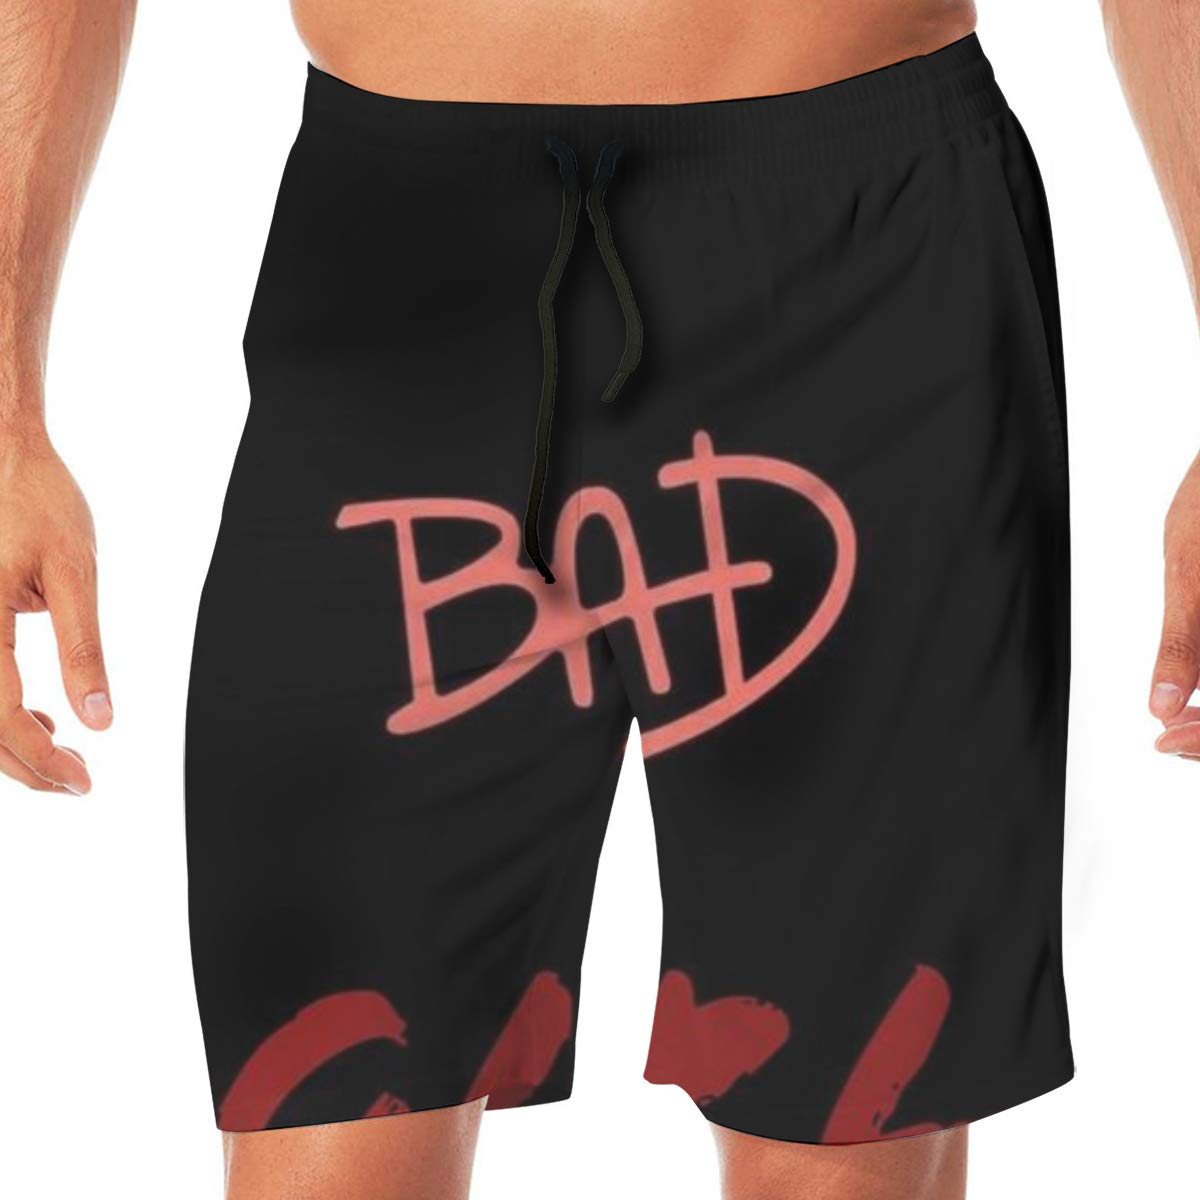 WOJUEDE Bad Girl Mens Swim Trunks Quick Dry Beach Wear Drawstring Board Shorts